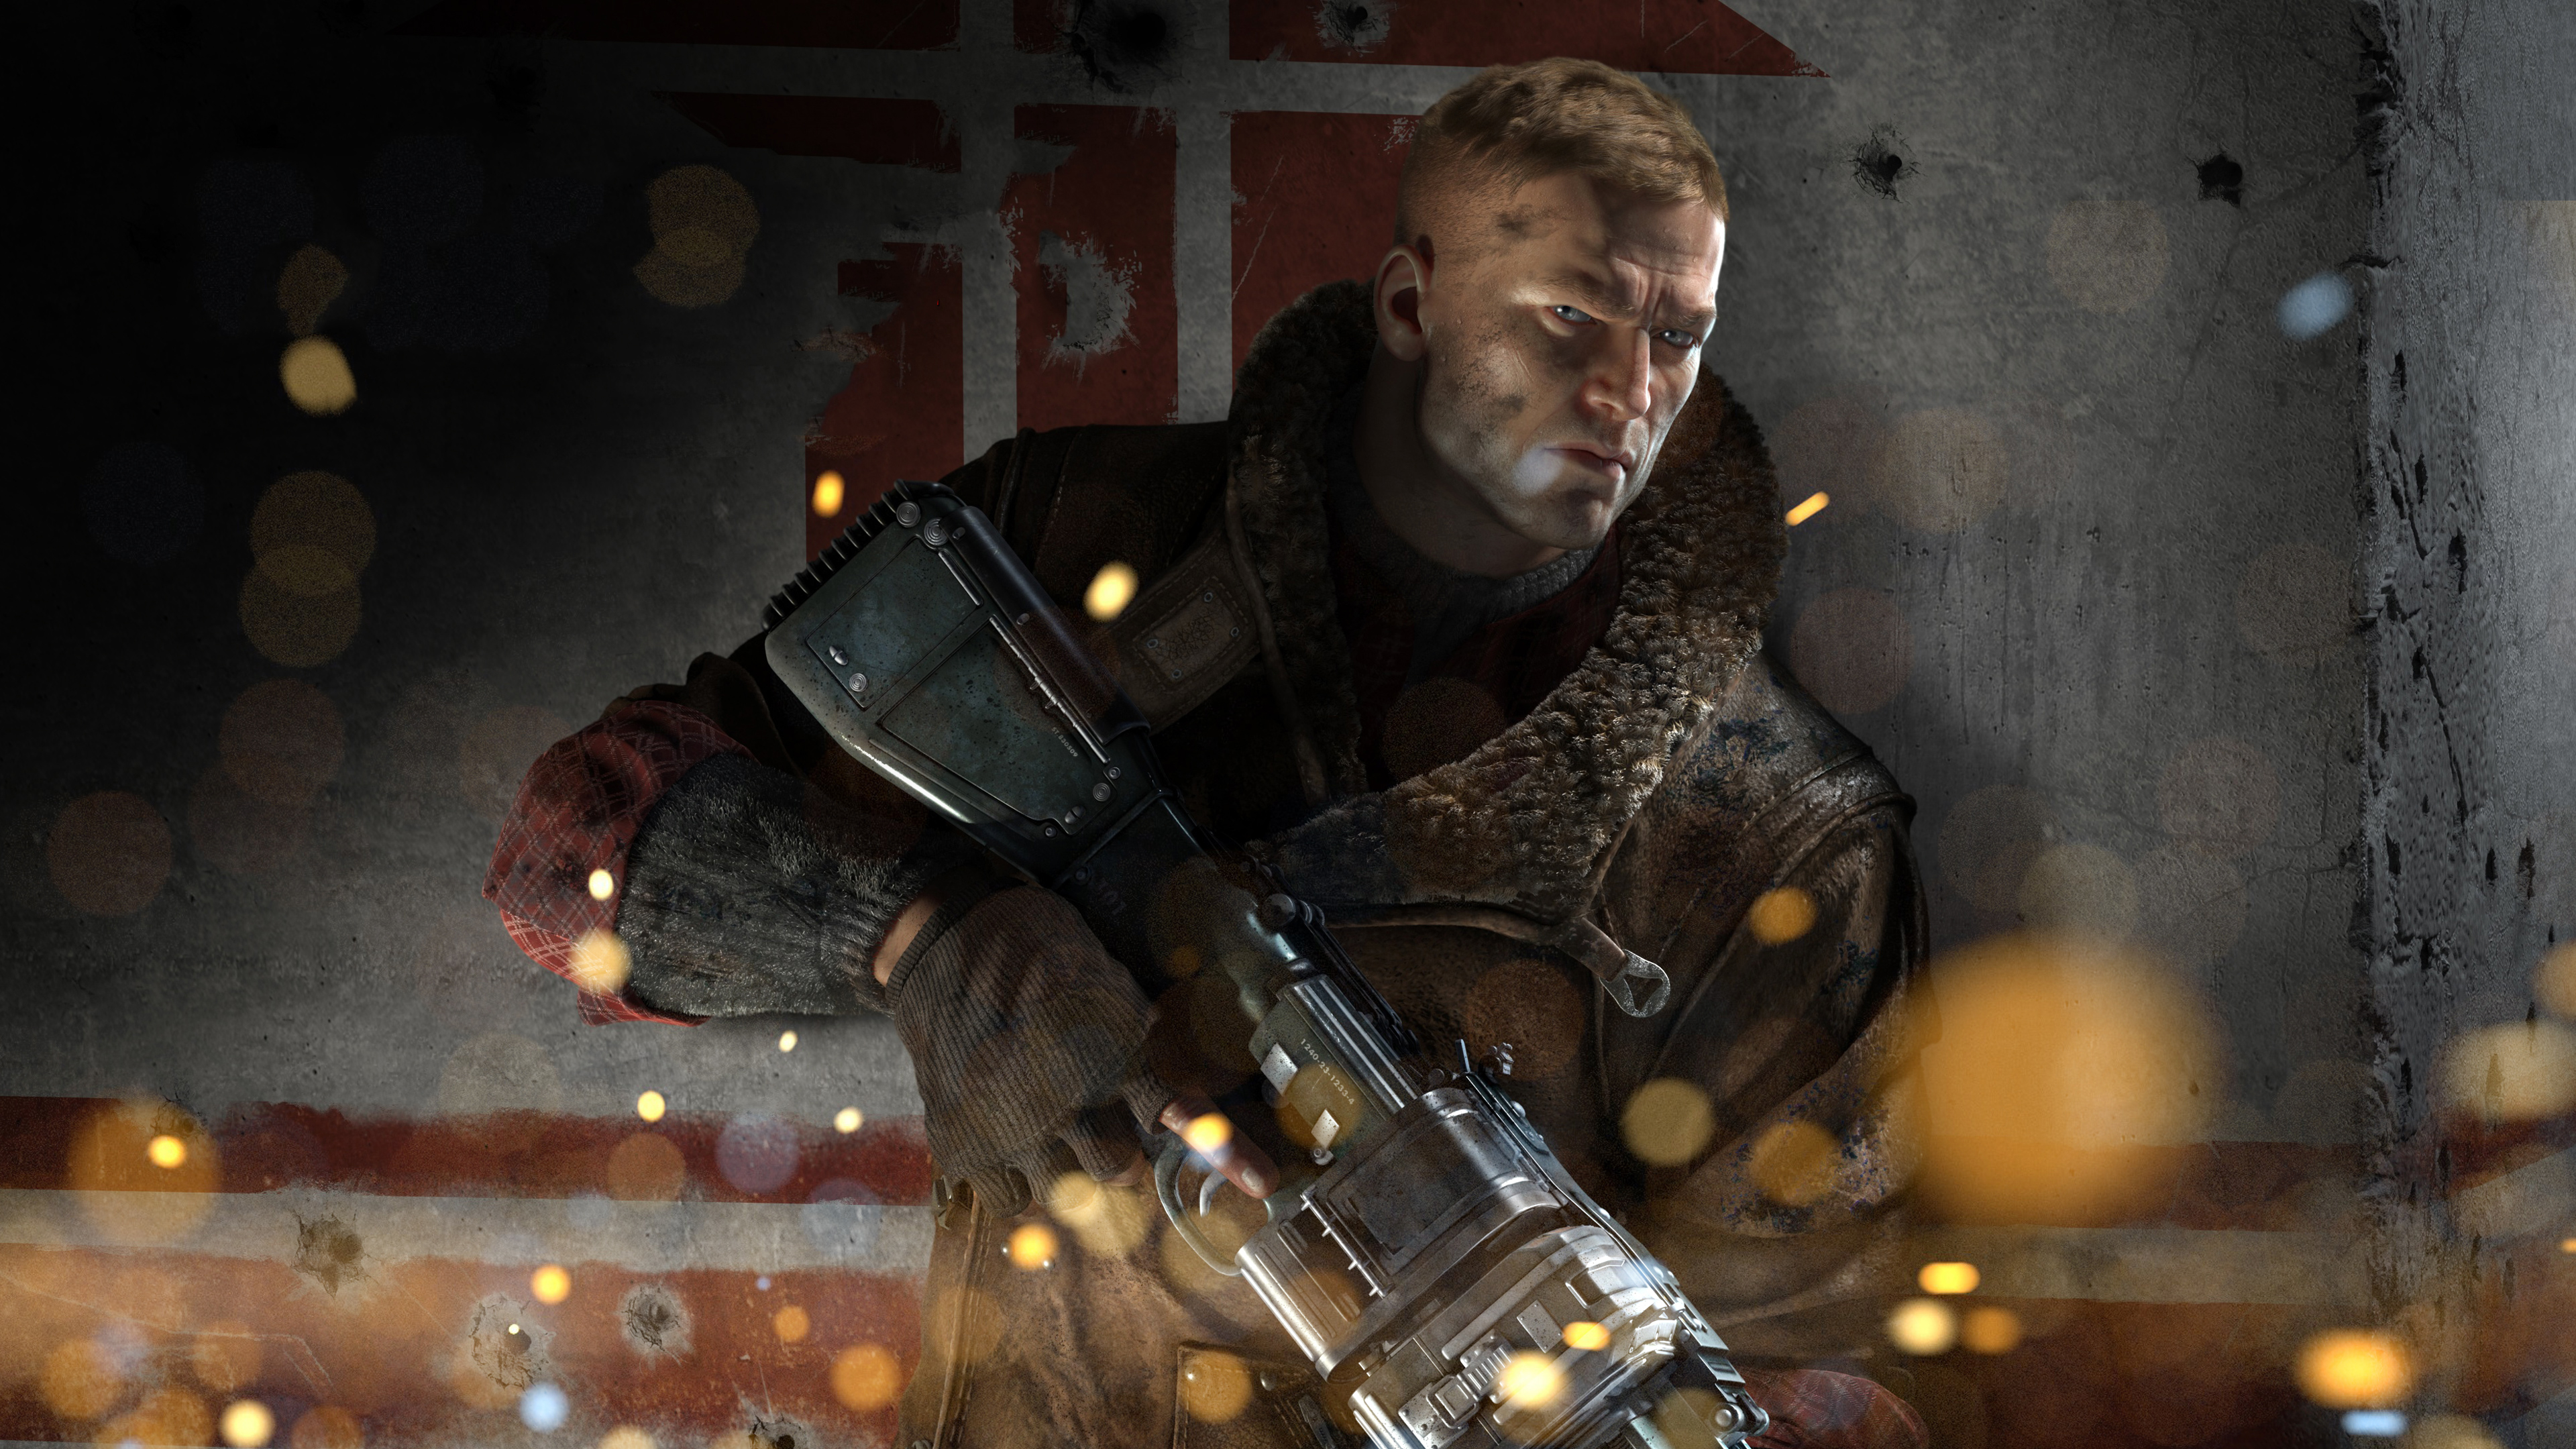 Wolfenstein 2 The New Colossus 4k, HD Games, 4k Wallpapers ...